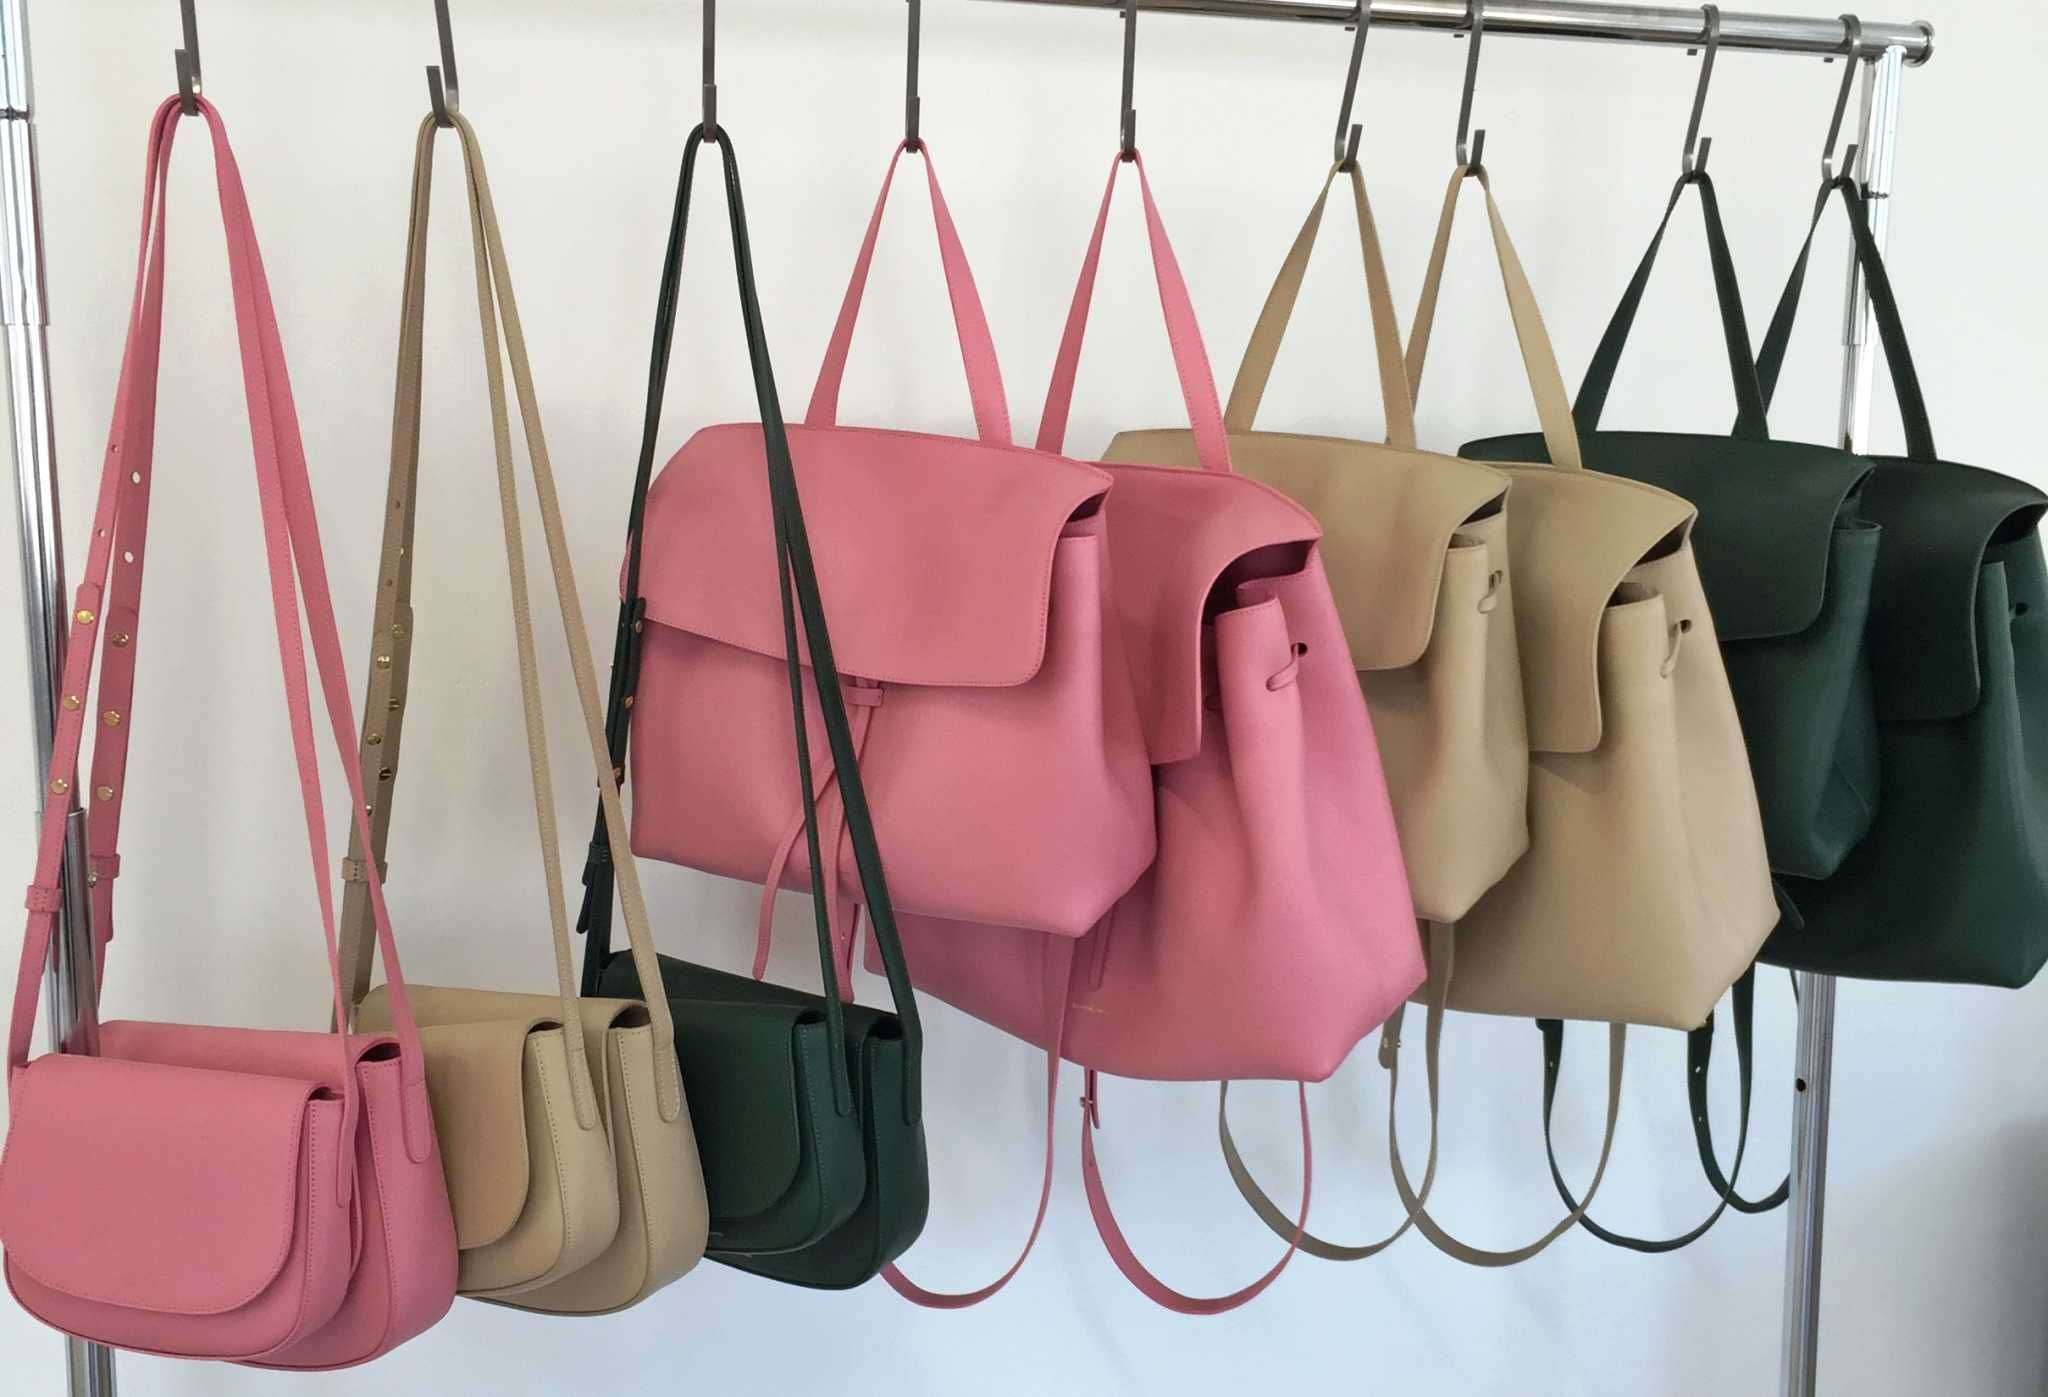 Mansur Gavriel Introduces New Bag Shapes for Fall 2015. You might want to add yourselves to the waitlists now, folks.